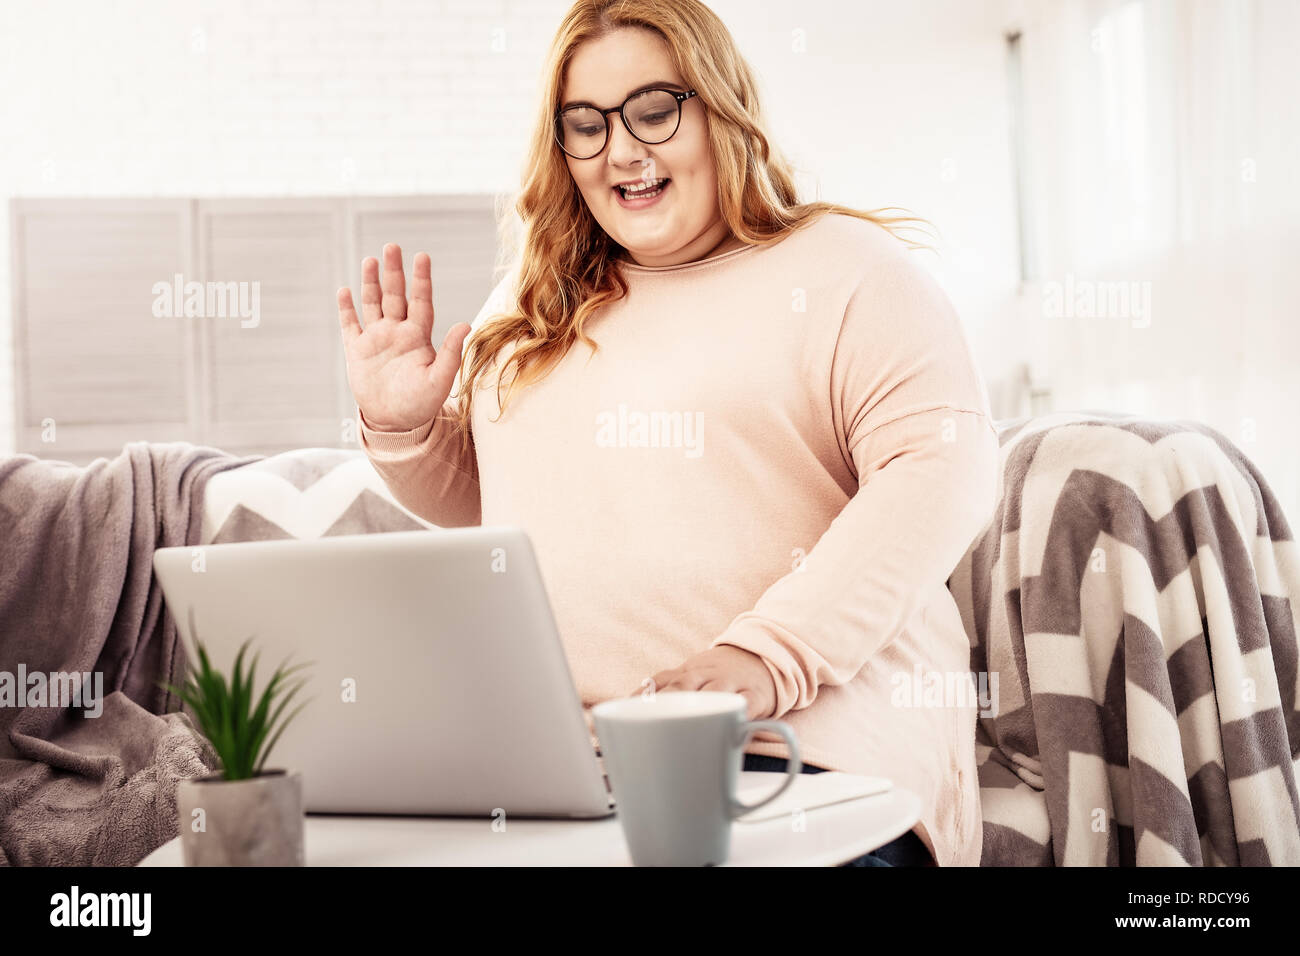 Resolute contented overweight woman with glasses on - Stock Image